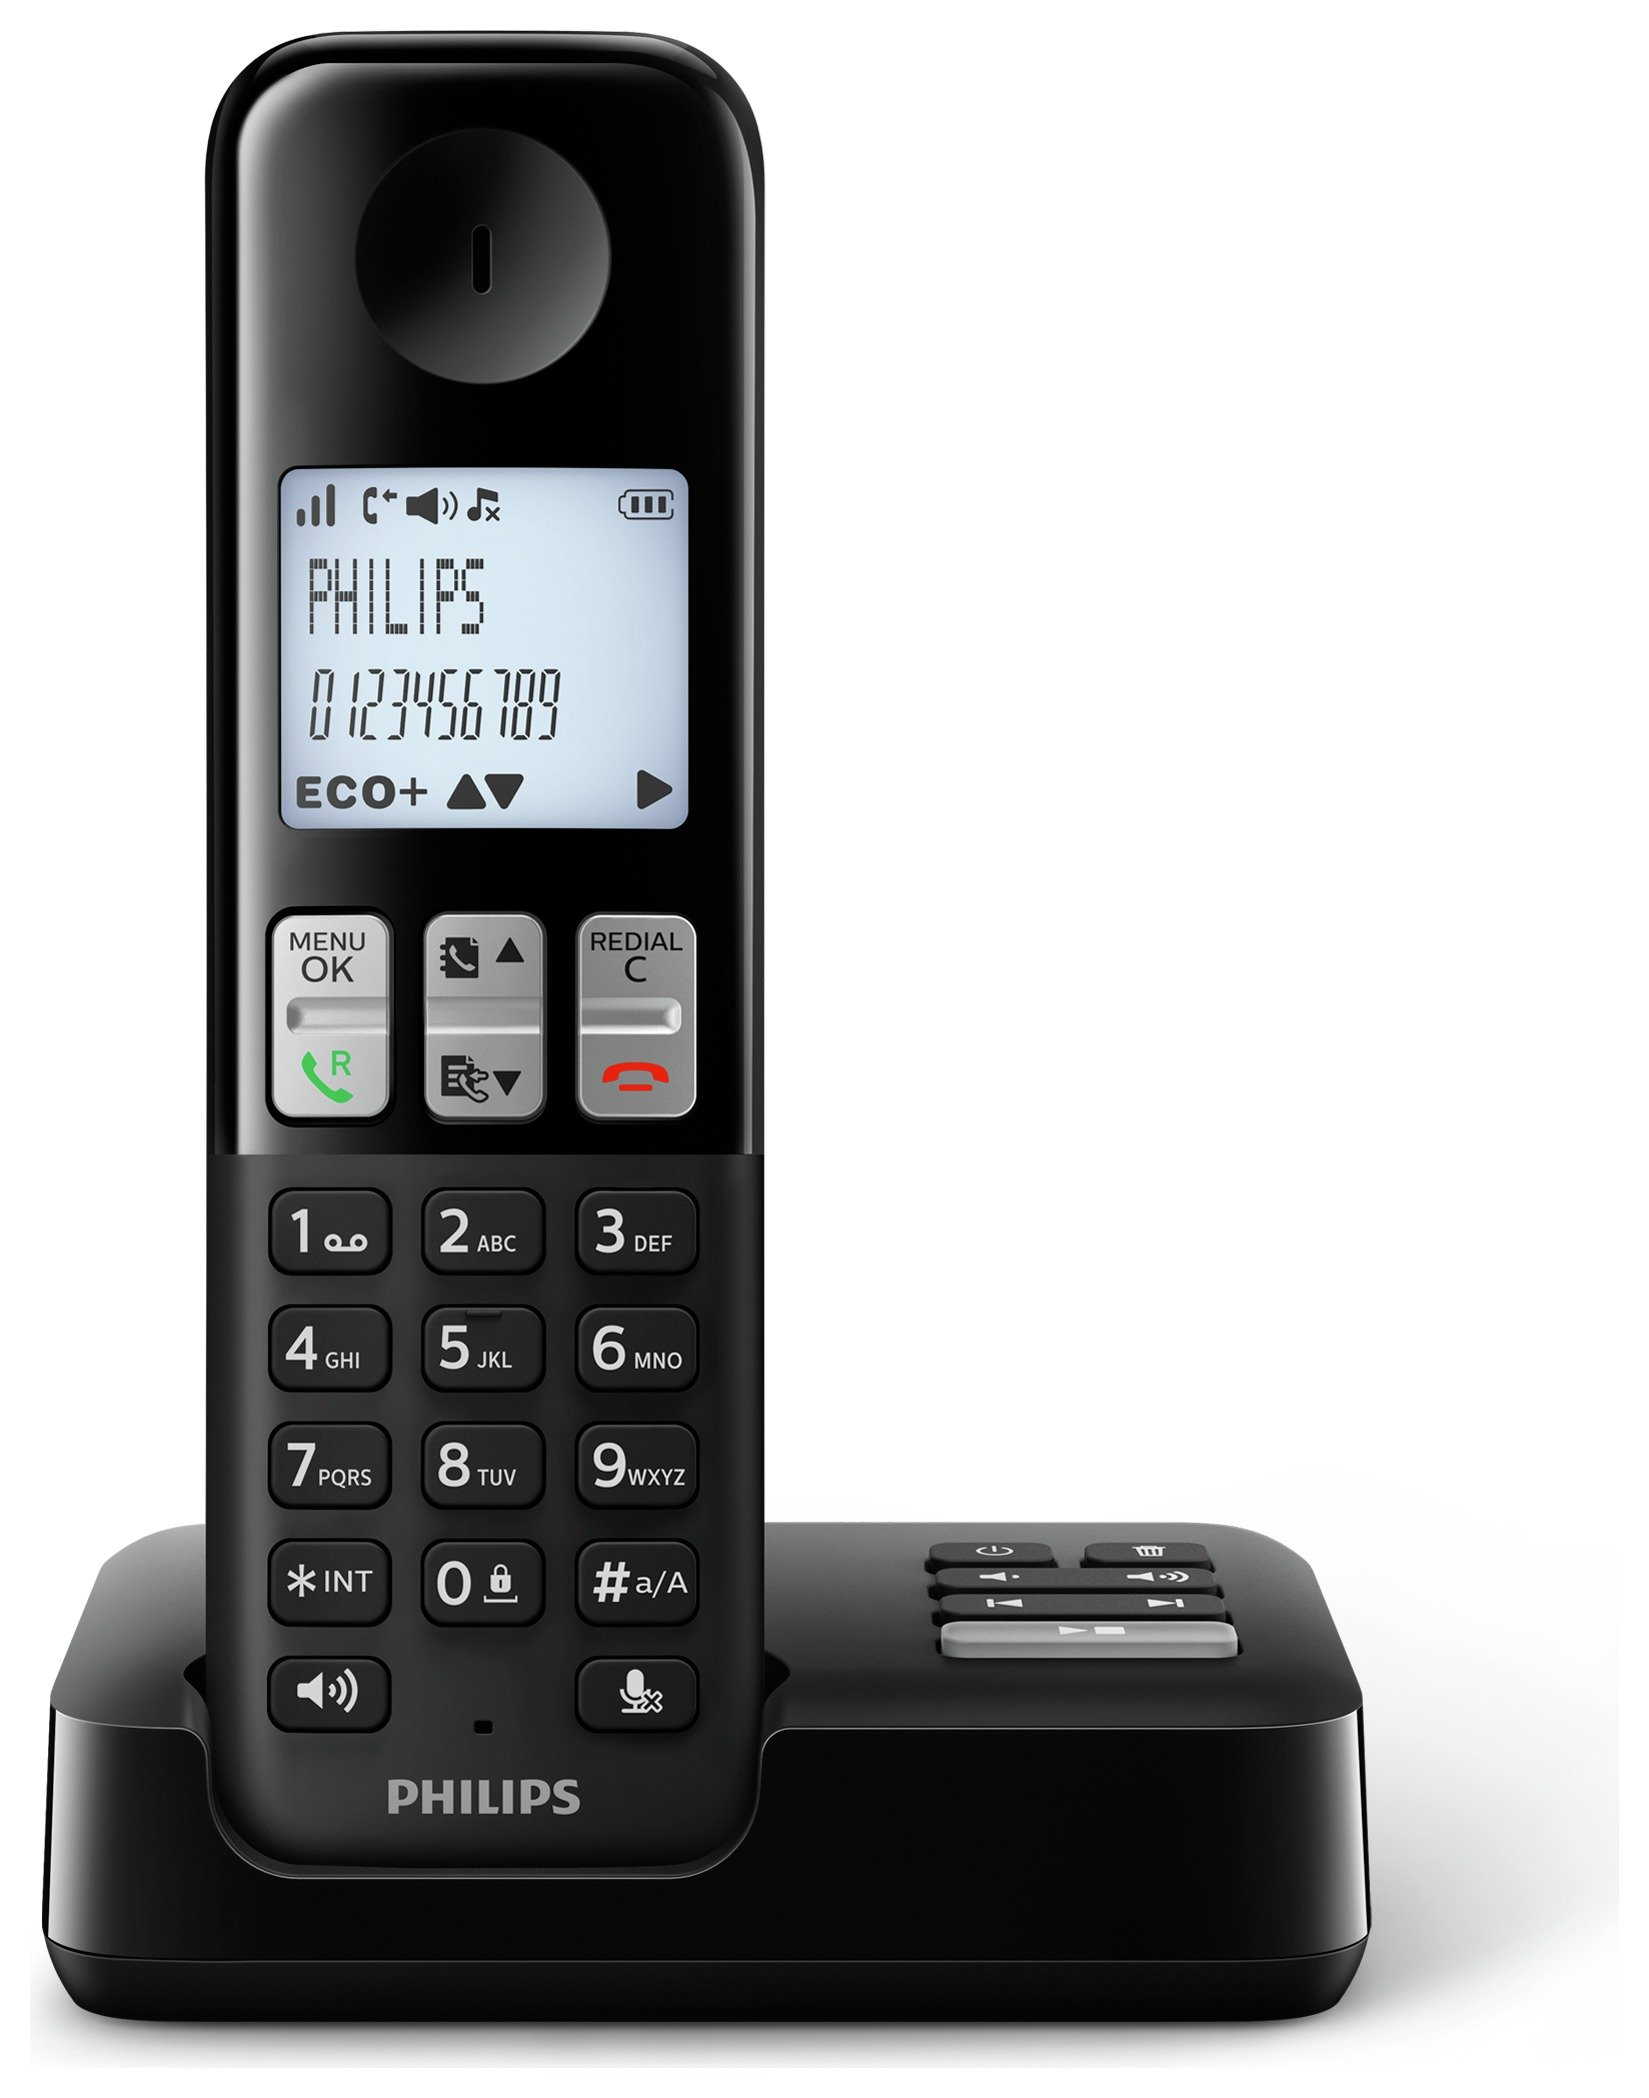 philips-d2351b-05-single-cordless-telephone